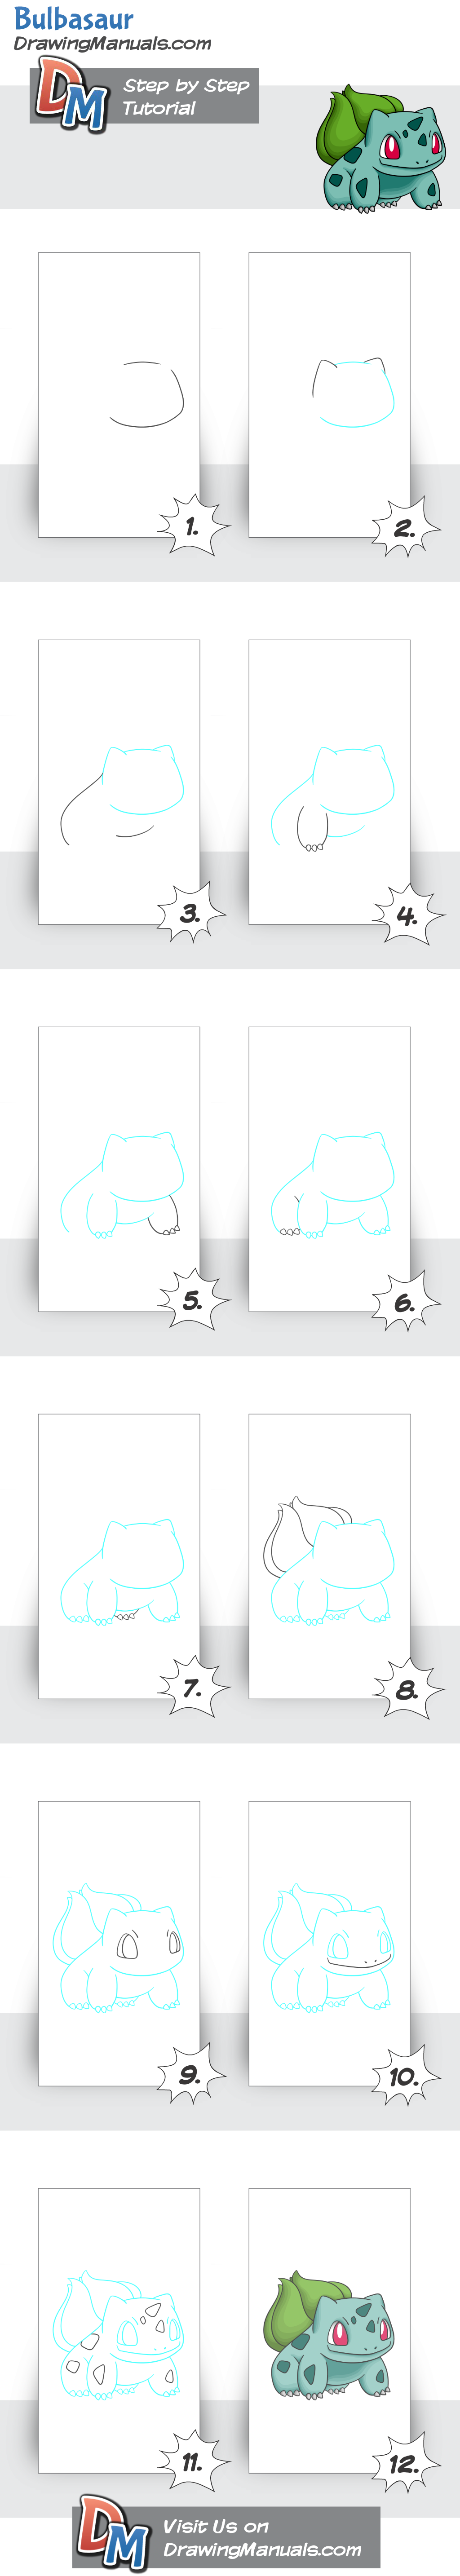 how to draw bulbasaur step by step